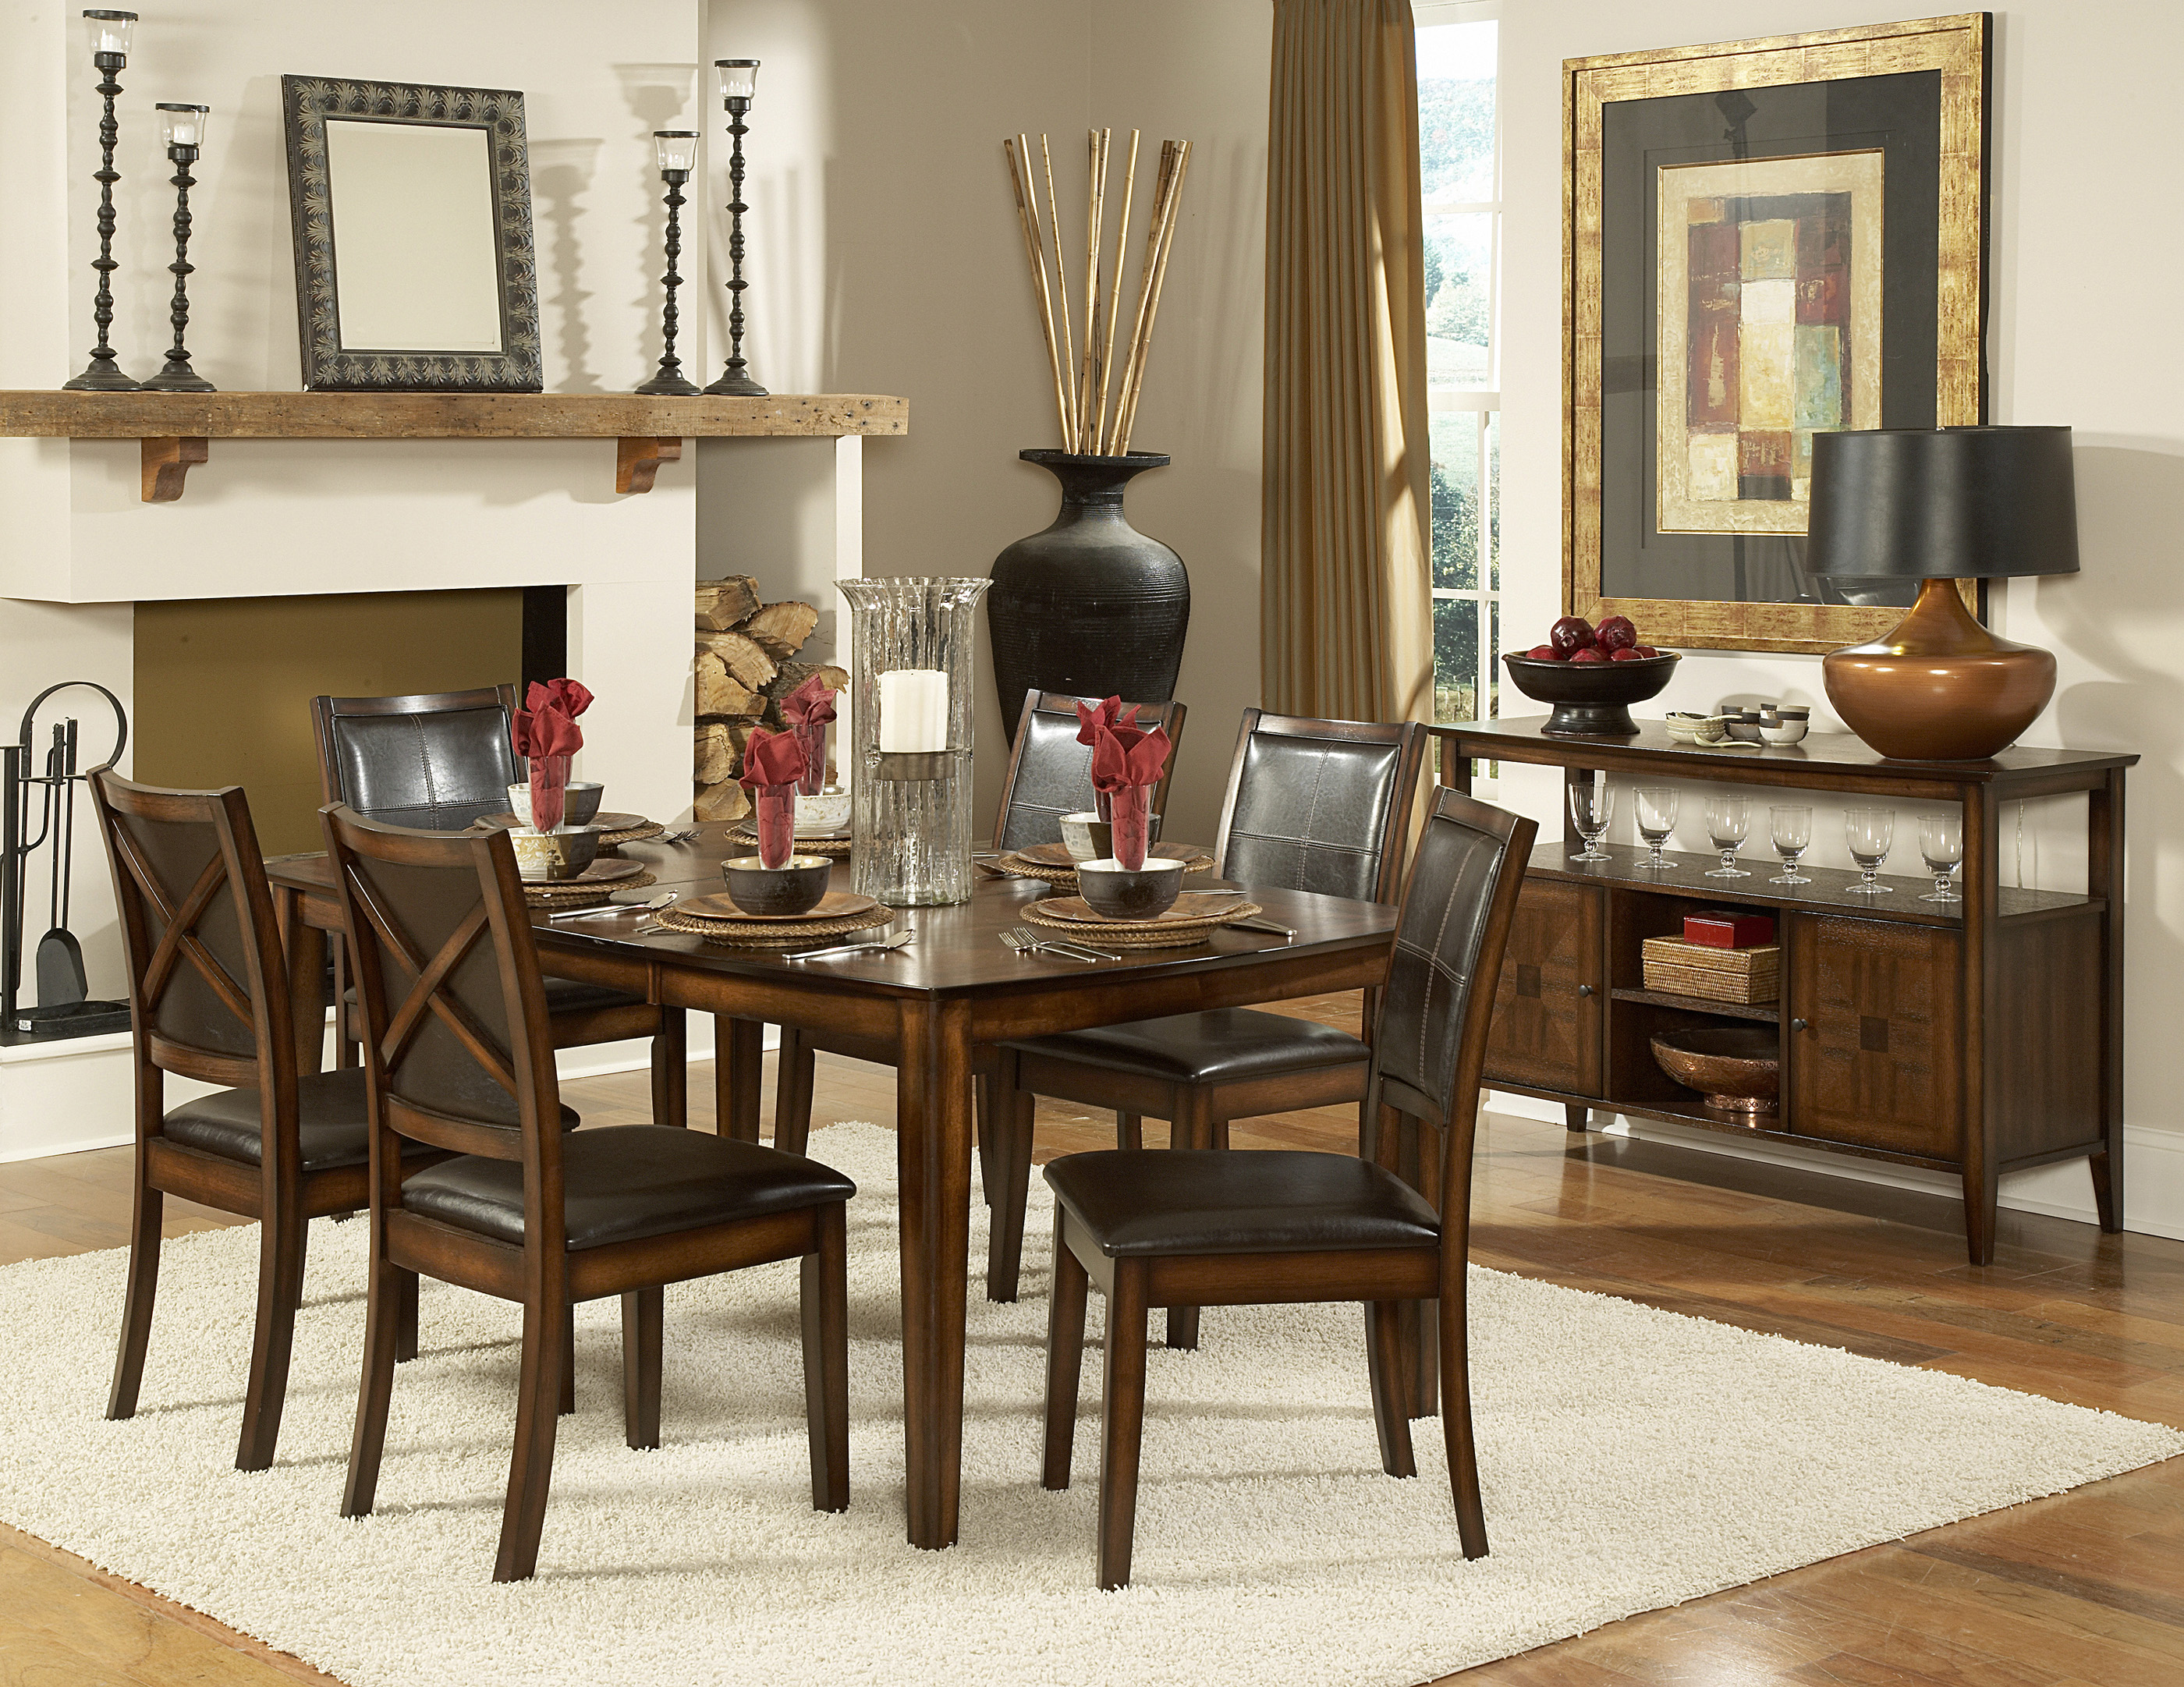 verona 7pc dining room set dallas tx | dining room sets